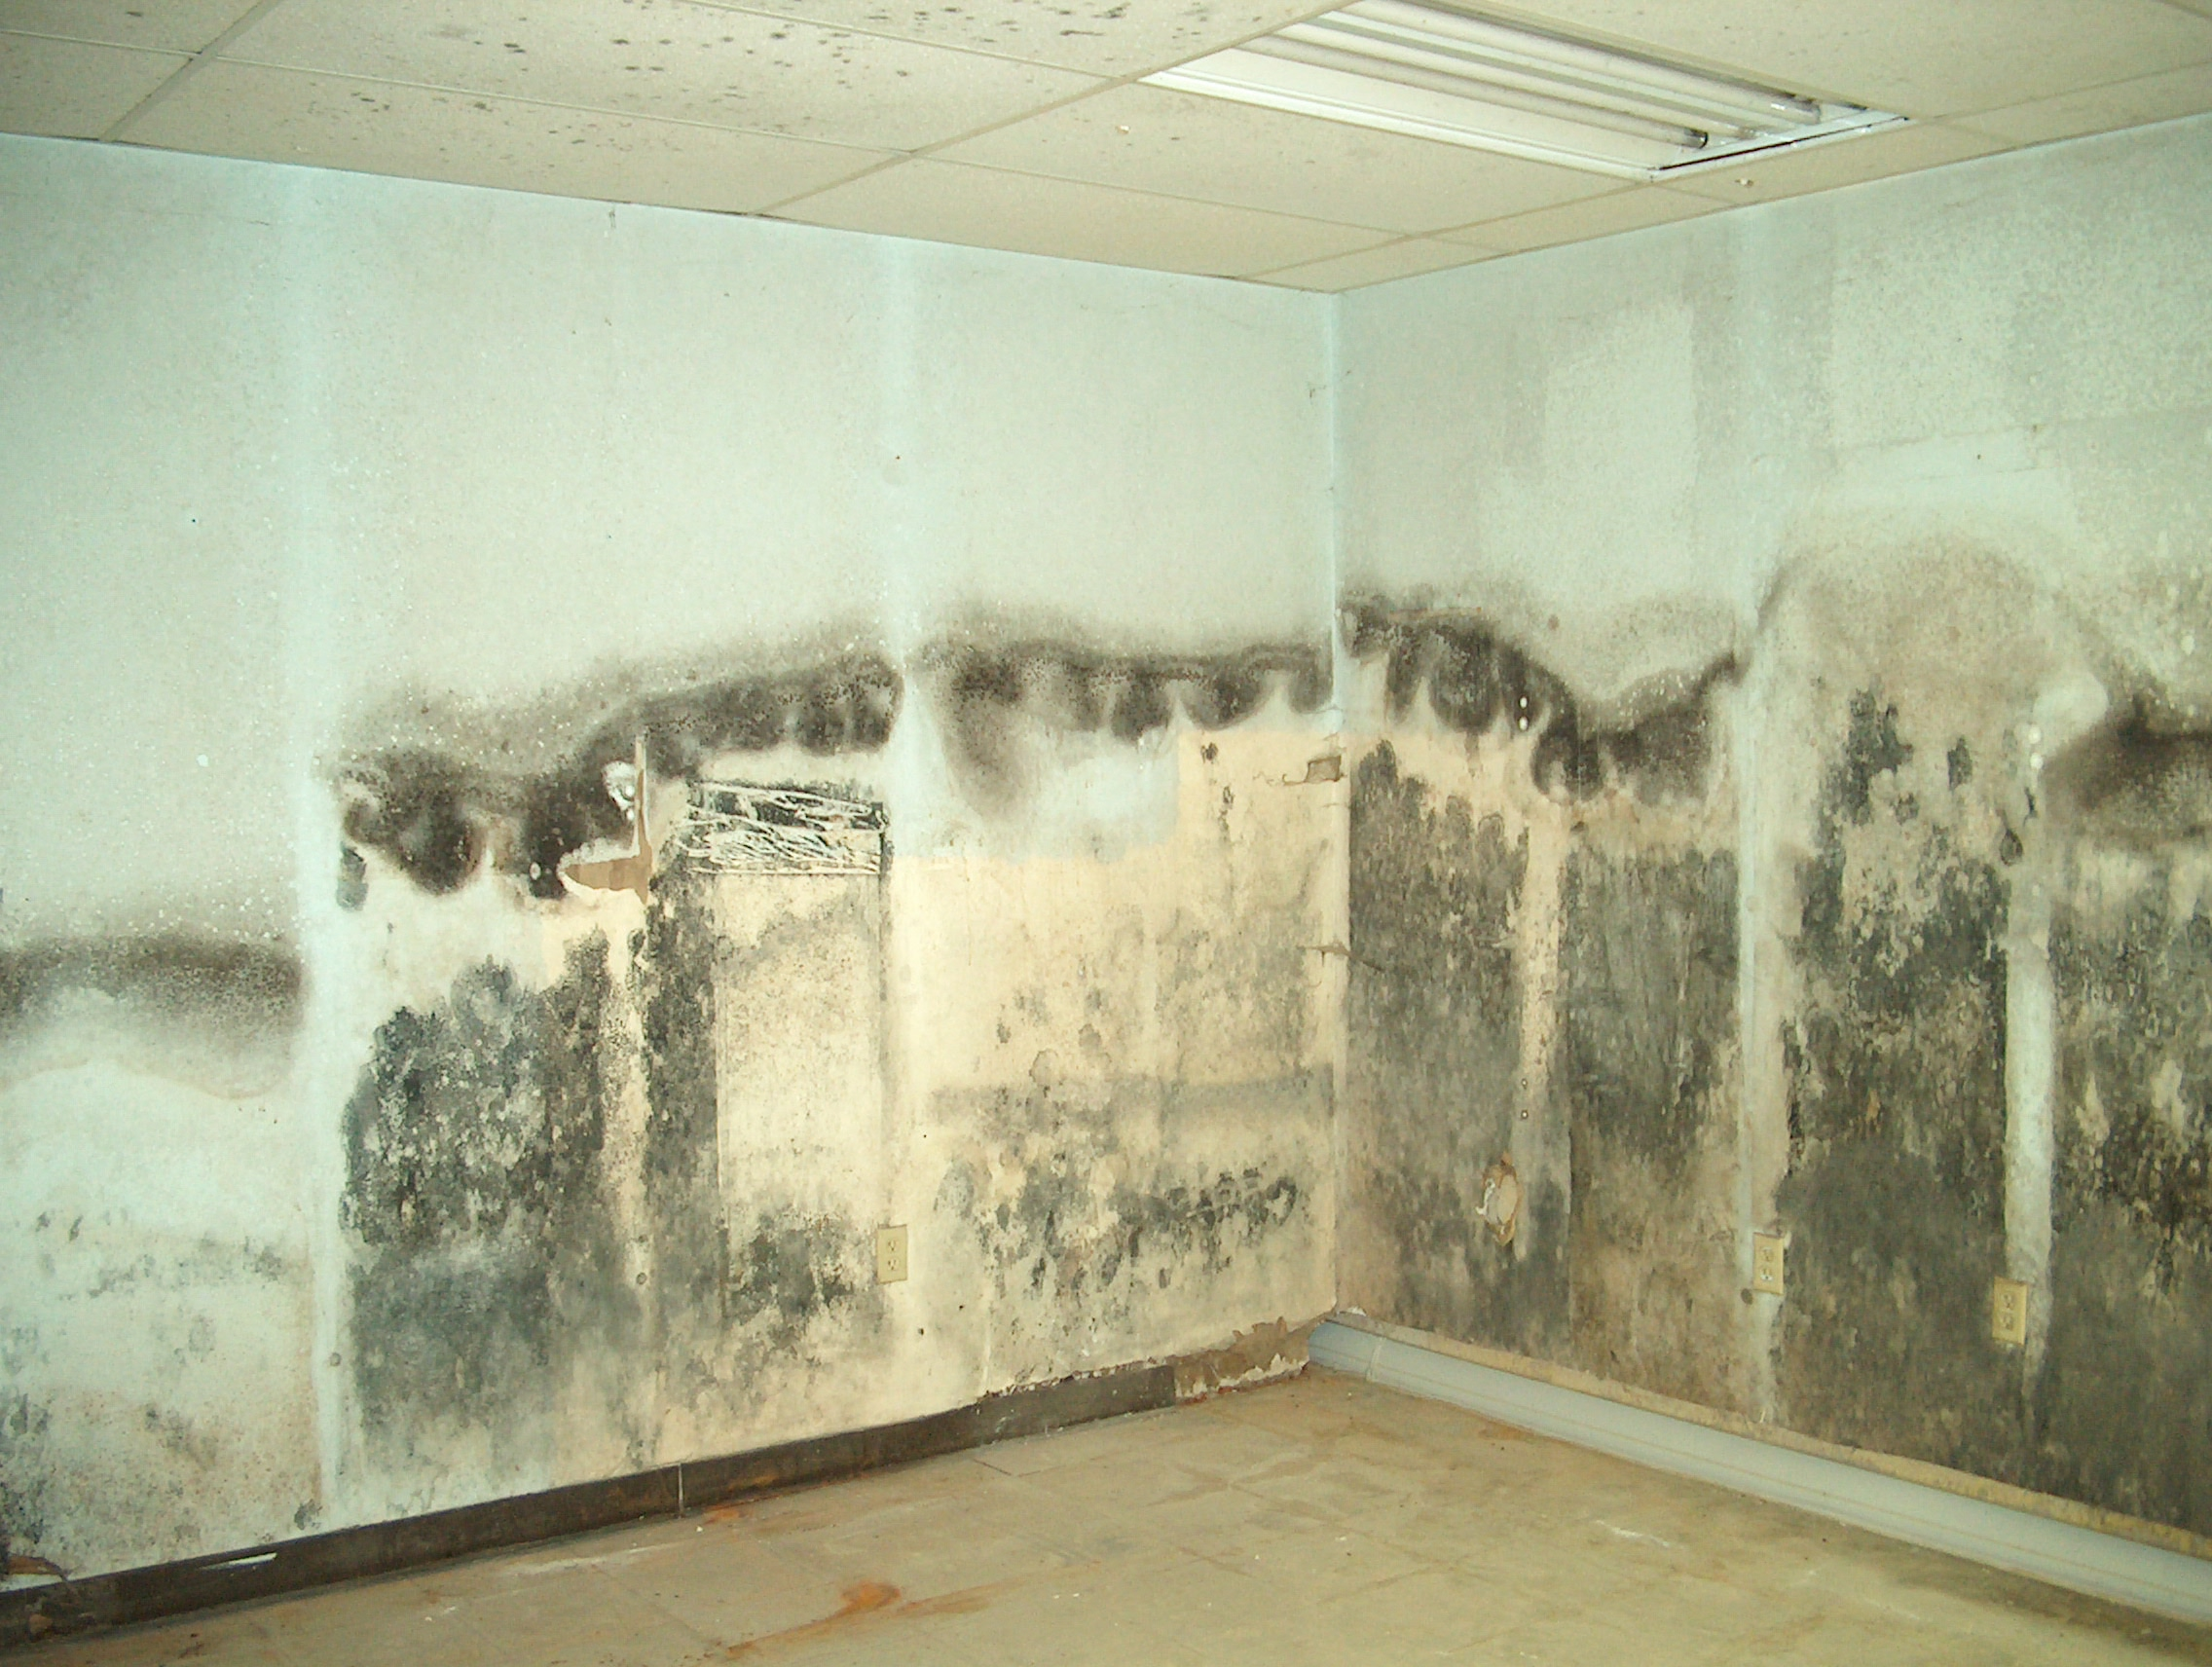 Black mold inspection cost - Above Is Penicillin Mold